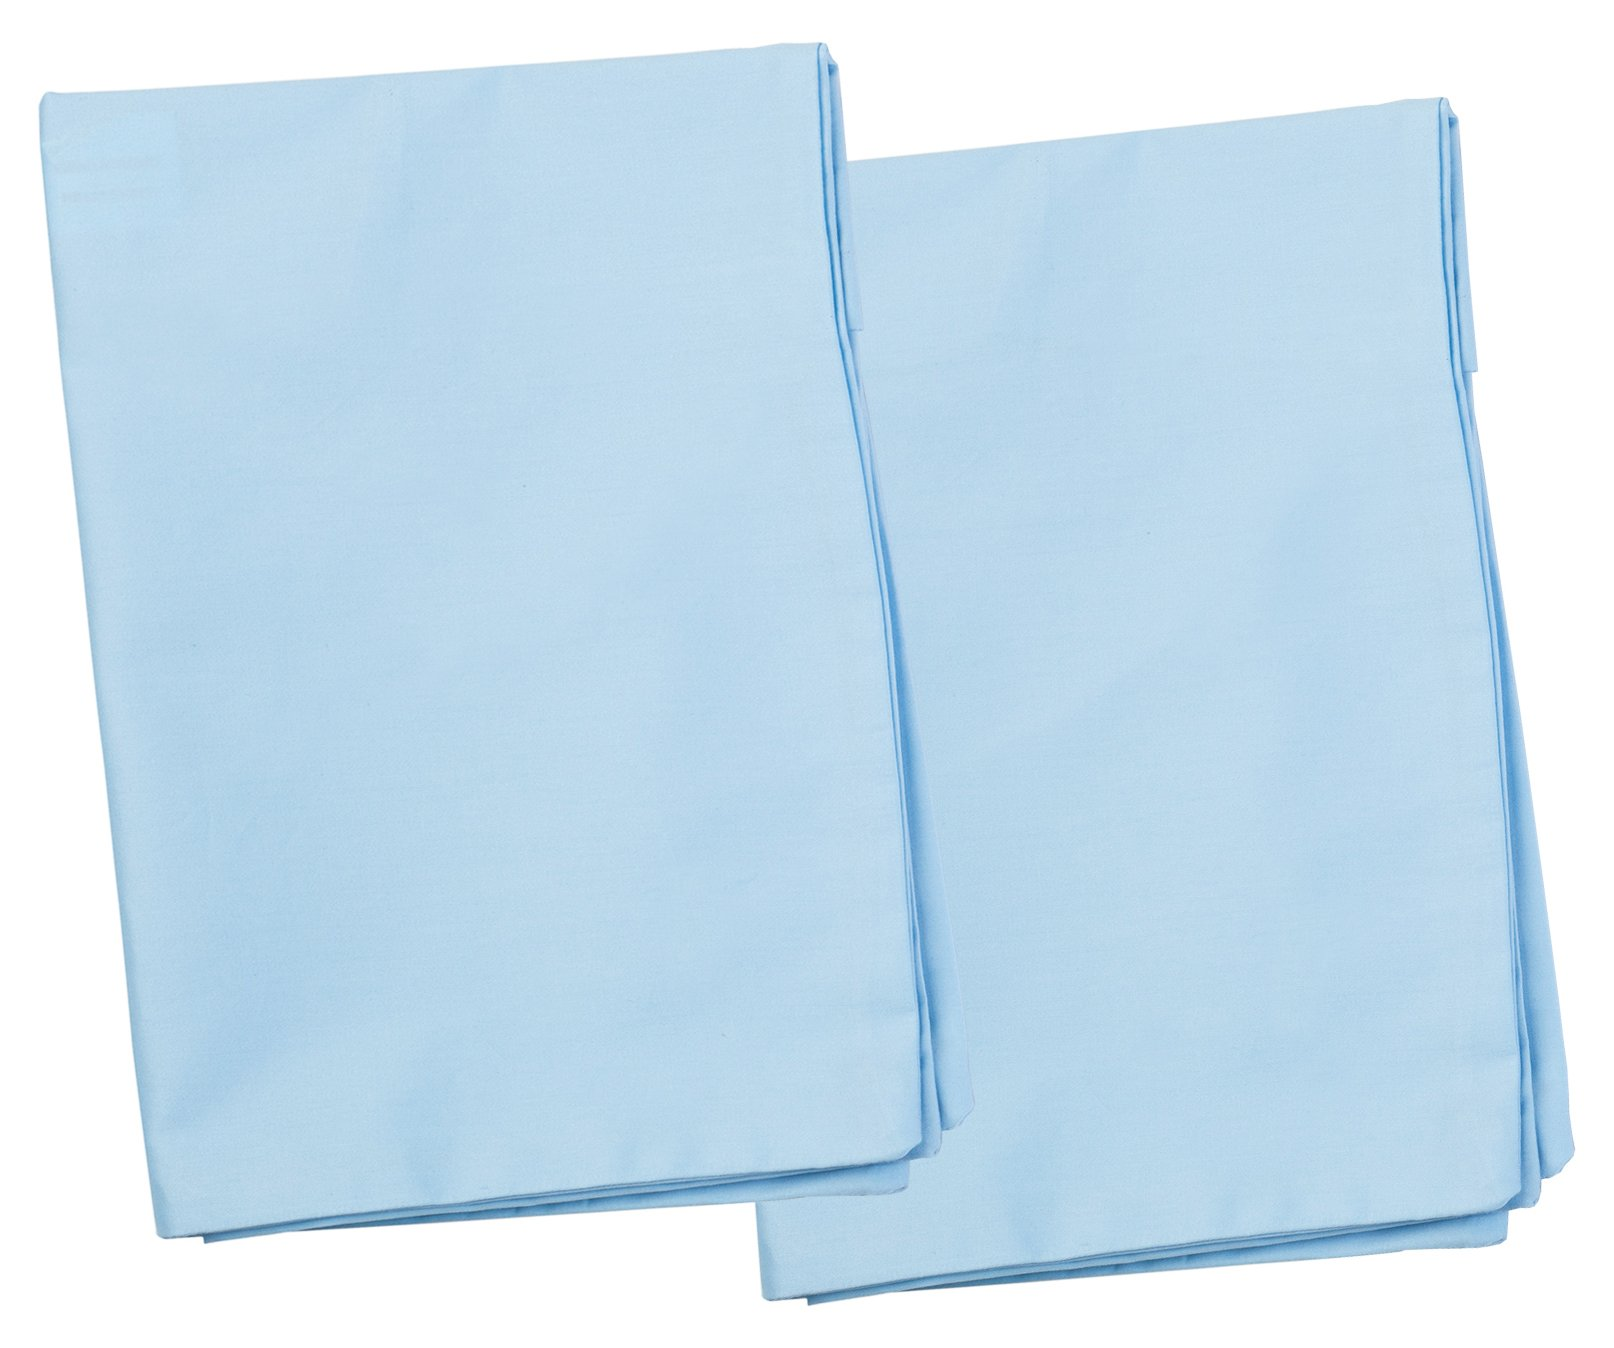 2 Blue Toddler Pillowcases - Envelope Style - For Pillows Sized 13x18 and 14x19 - 100% Cotton With Soft Sateen Weave - Machine Washable